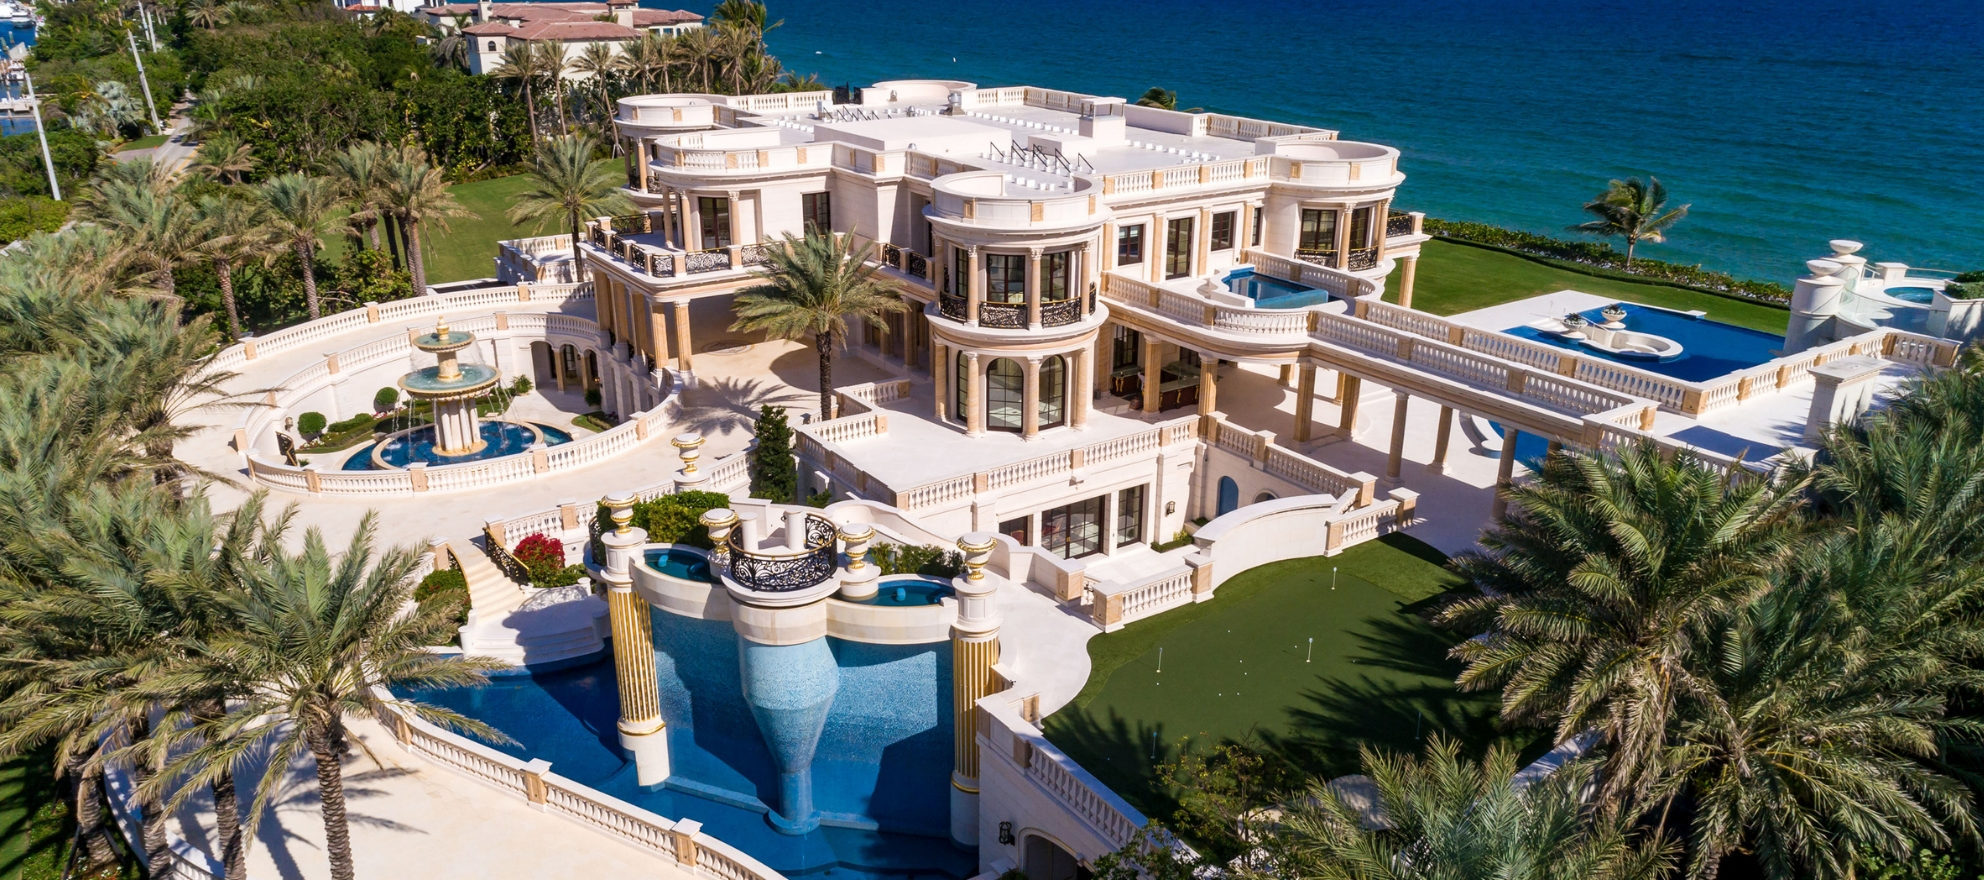 How to sell a spectacular $159M Florida estate that's gone on and off market